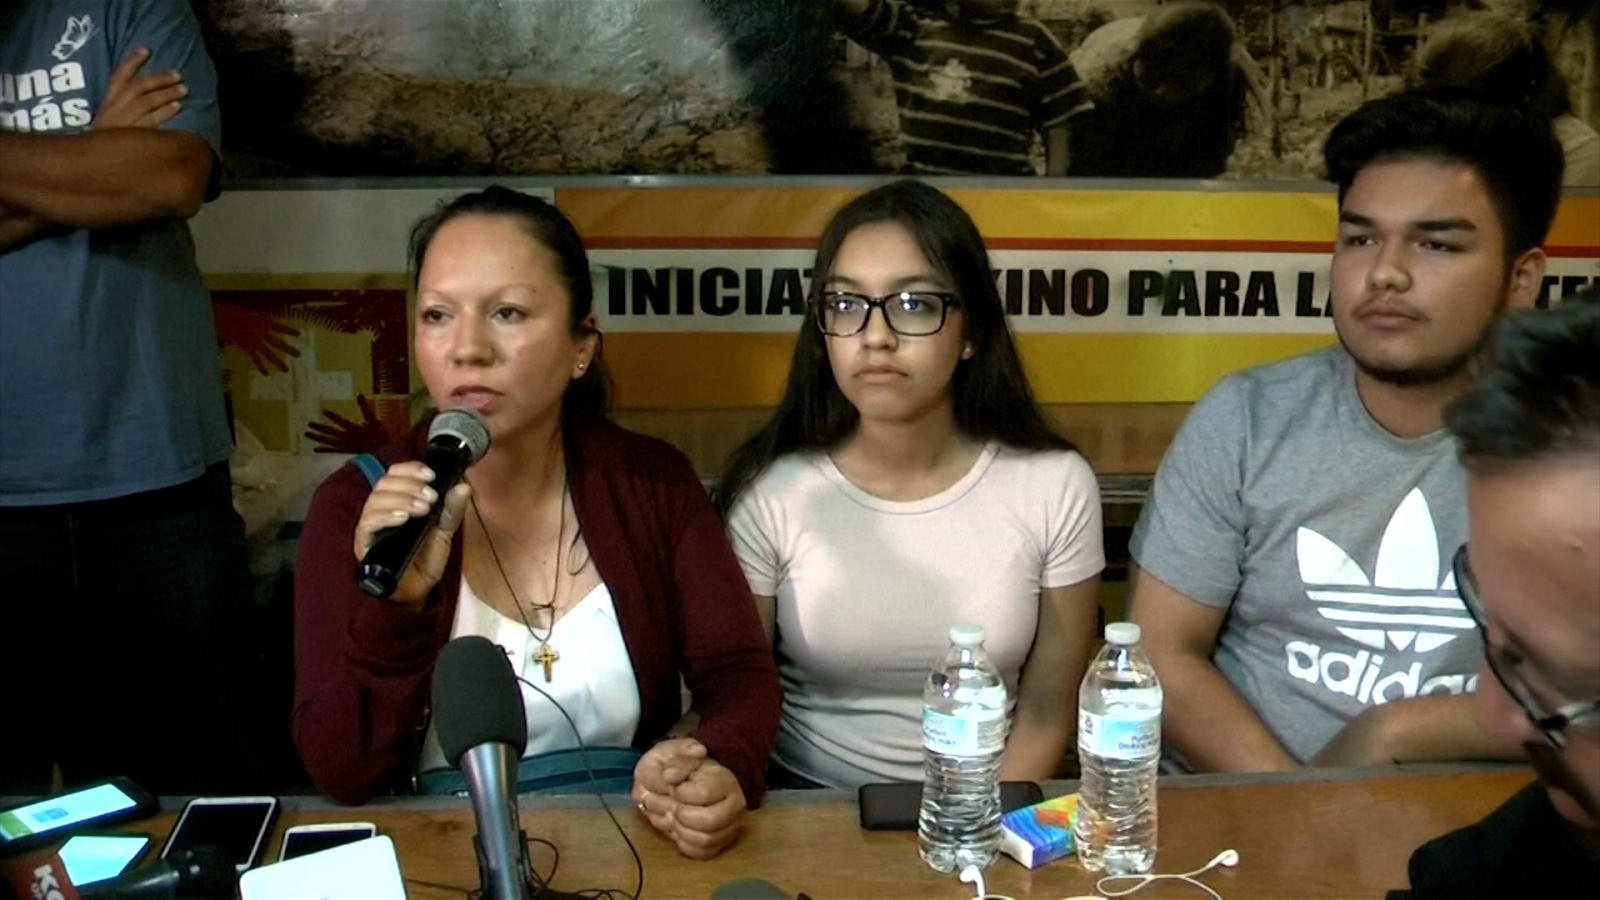 Arizona mother speaks out after being deported from US